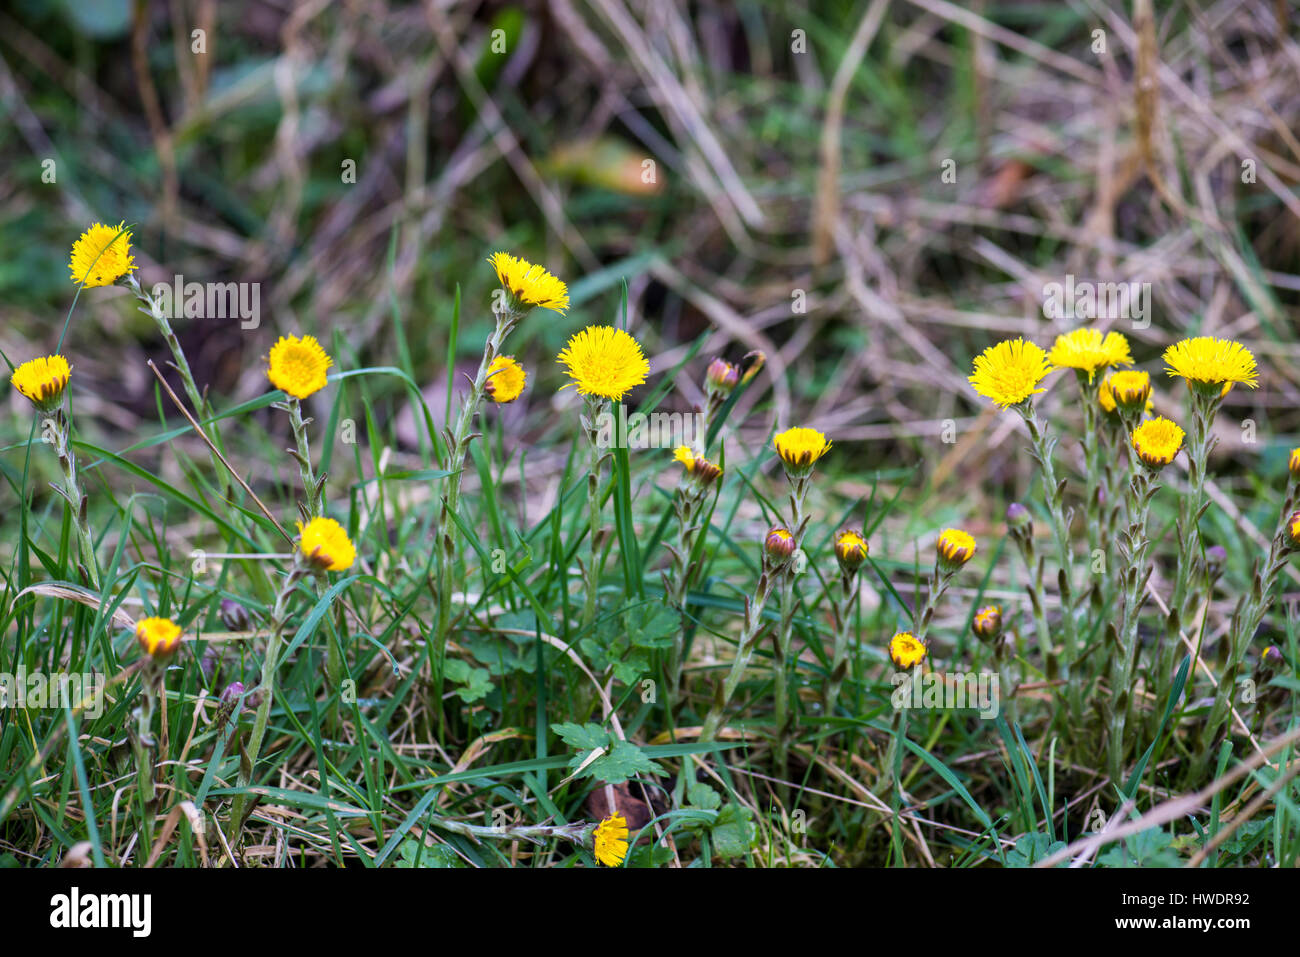 Coltsfoot (Tussilago farfara). A plant of calcareous clay soils in early spring. Formerly used as a herbal remedy - Stock Image